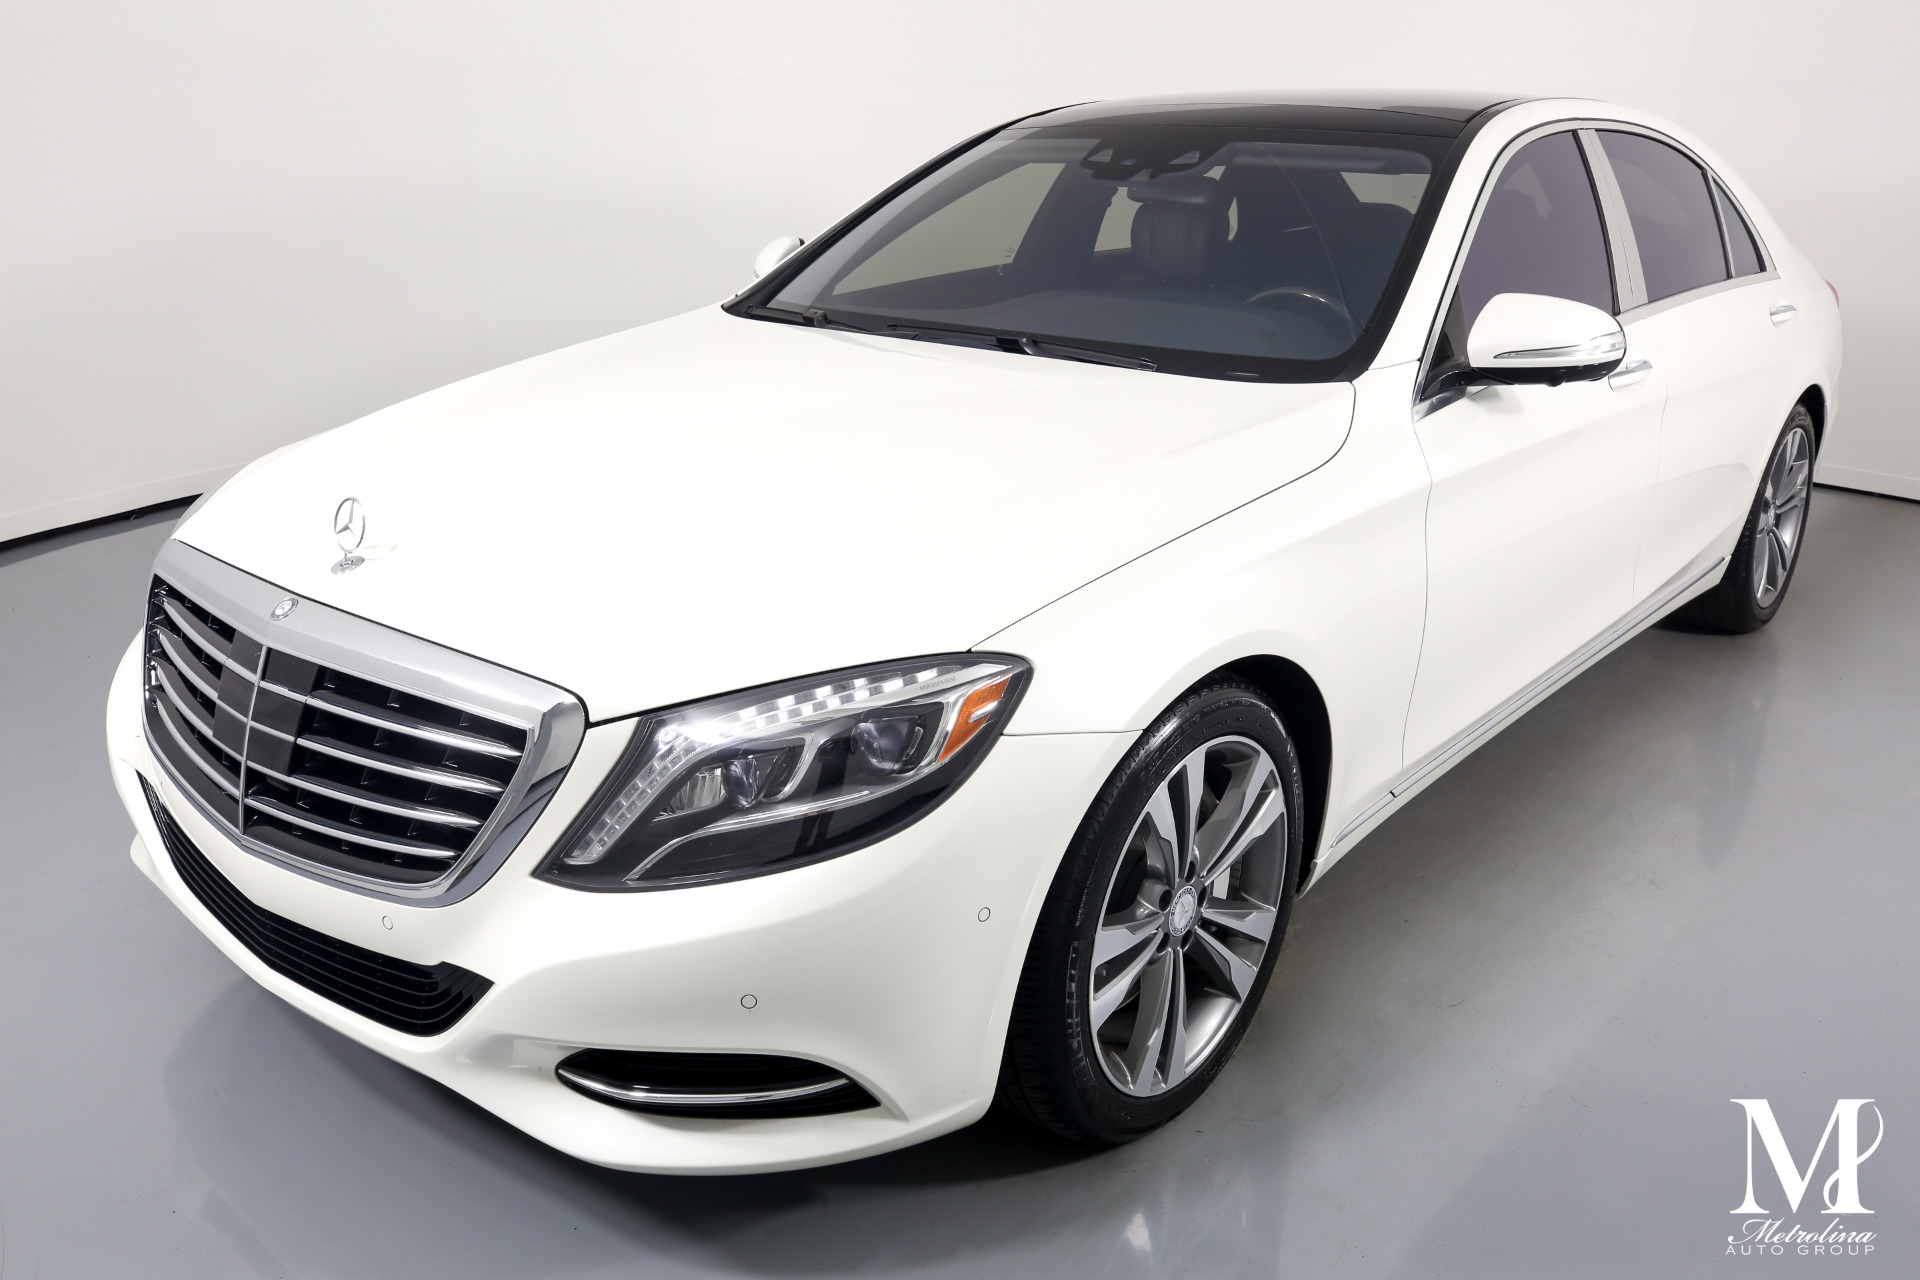 Used 2015 Mercedes-Benz S-Class S 550 4MATIC for sale $49,996 at Metrolina Auto Group in Charlotte NC 28217 - 4